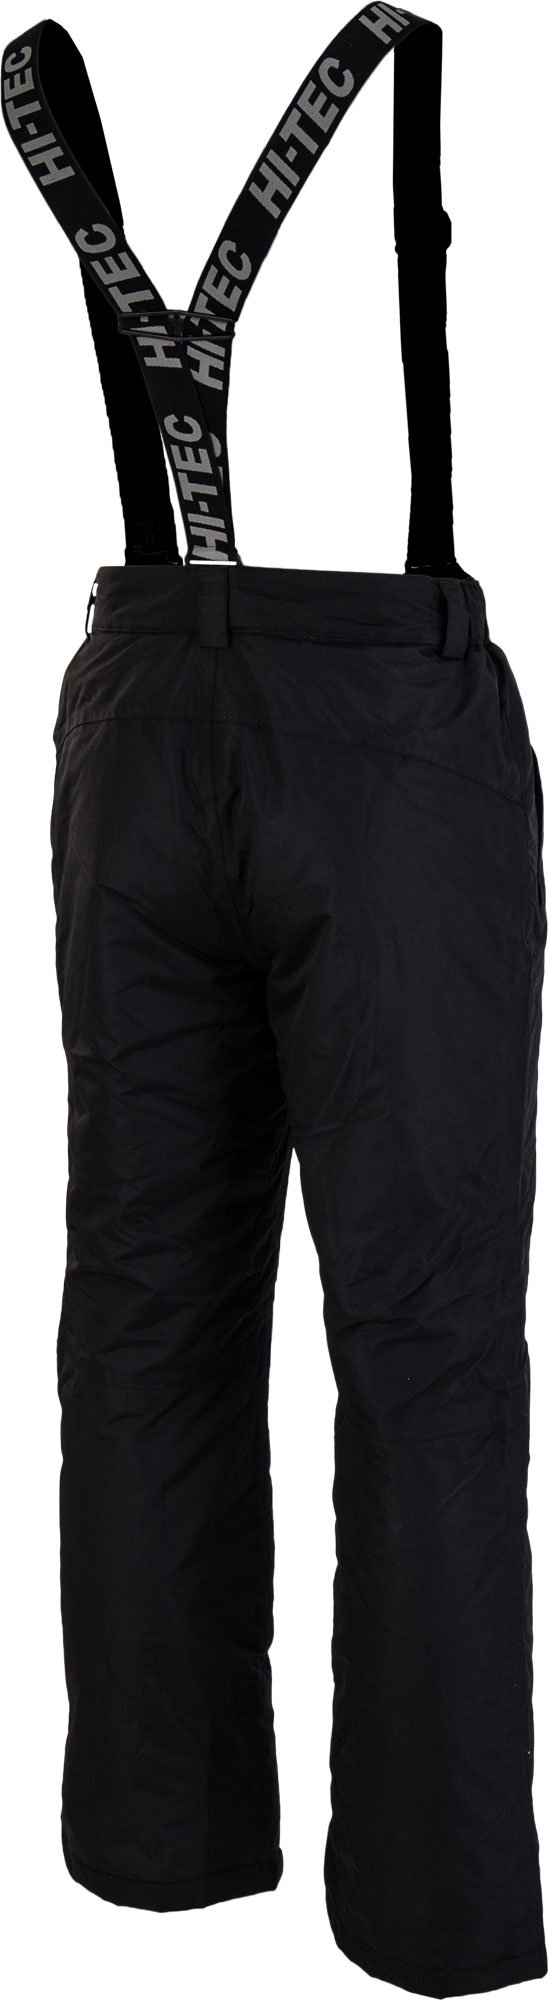 GRAL BASIC PANTS - Men's trousers